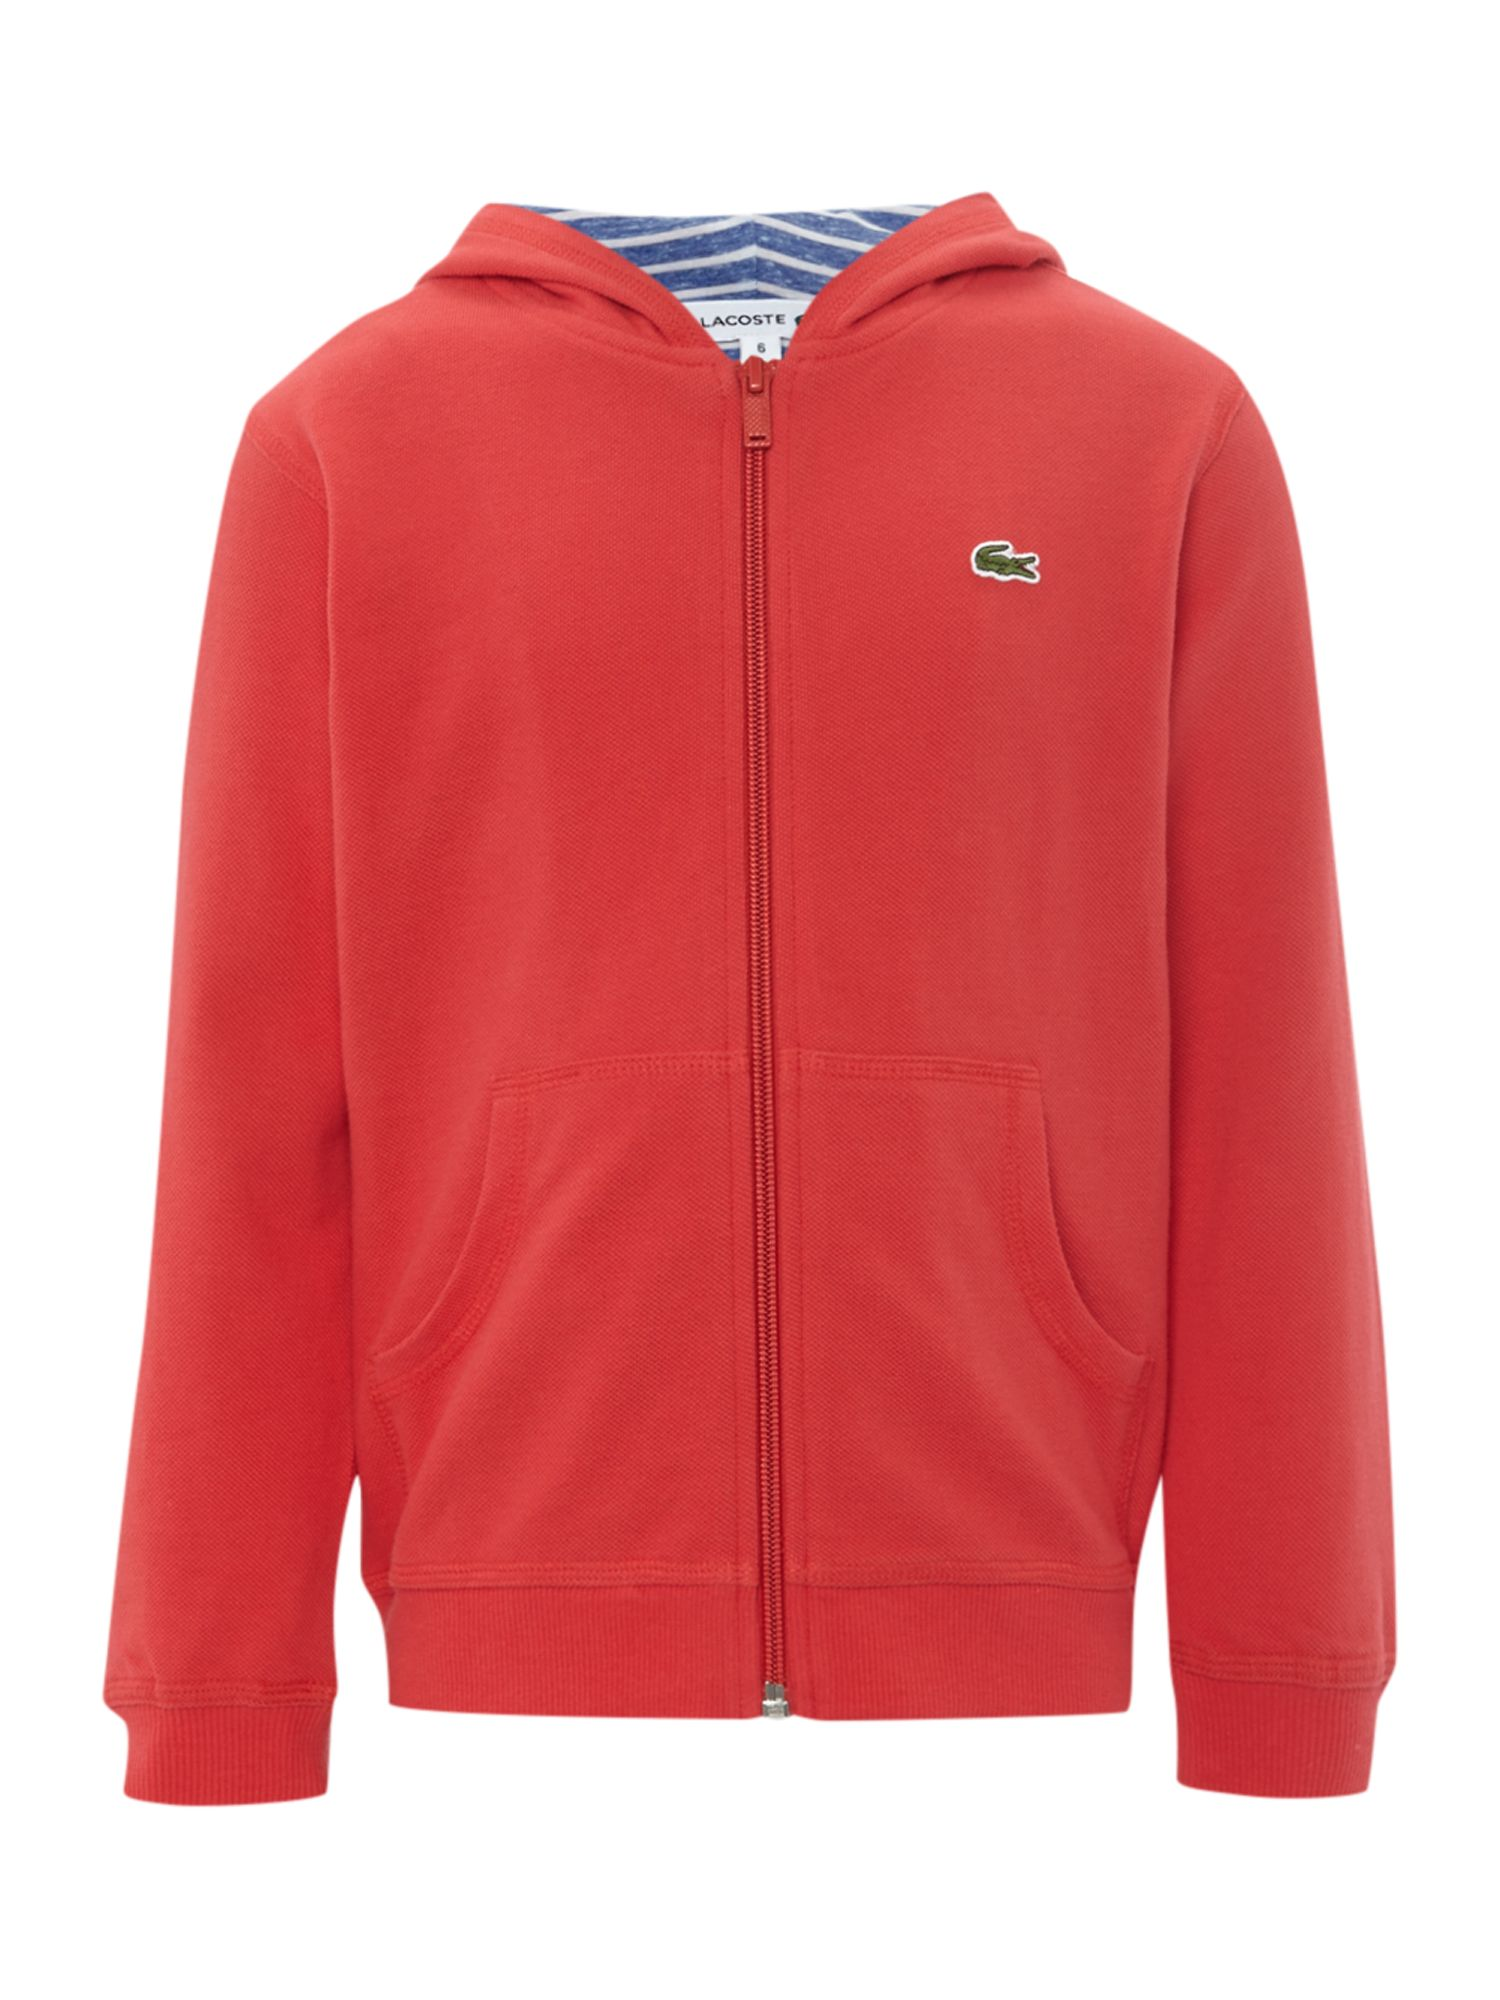 Boys pique hooded sweater